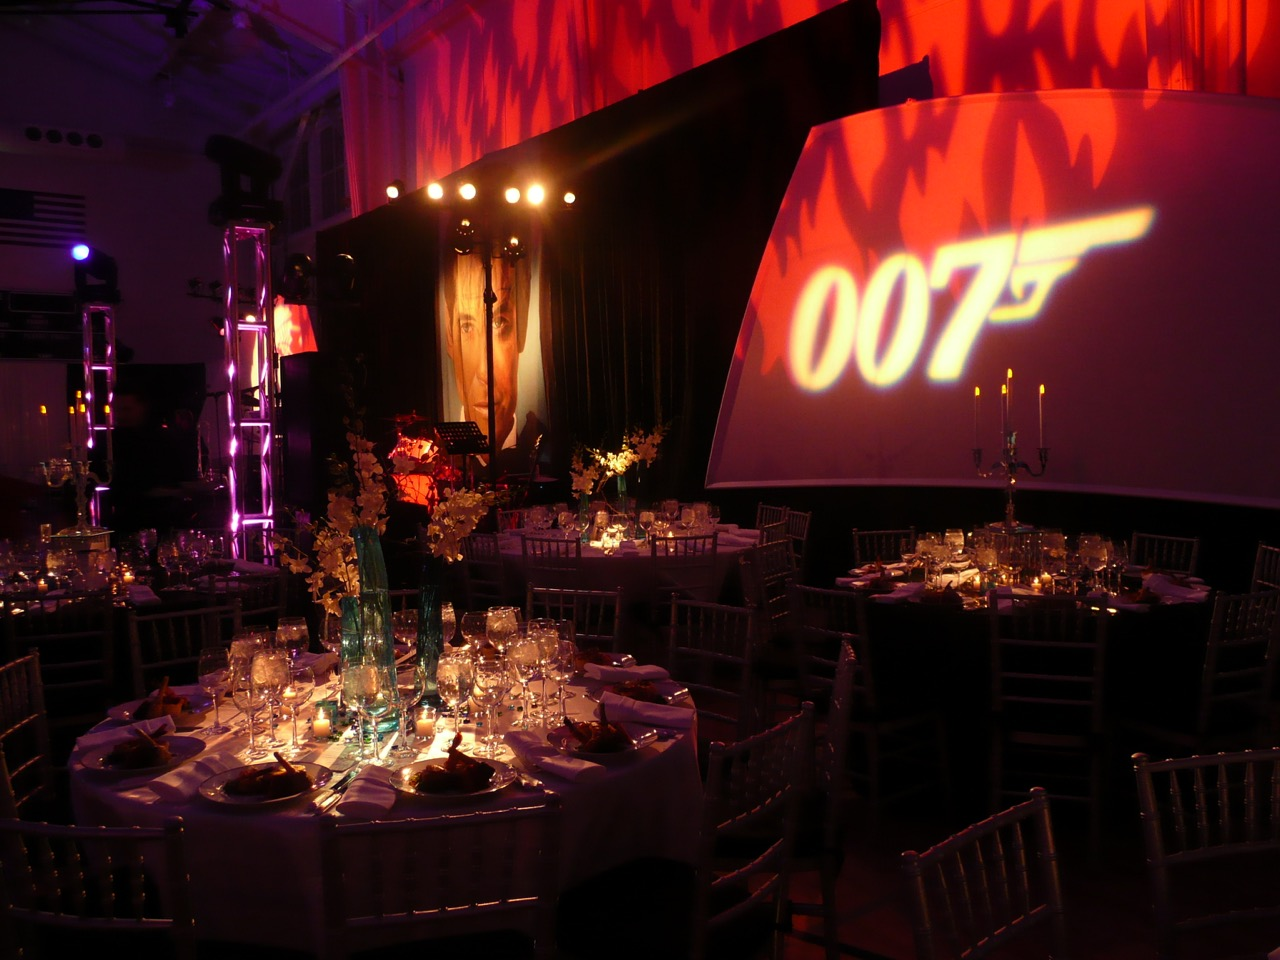 James+Bond+007+Decor+by+Eggsotic+Events+2.jpg